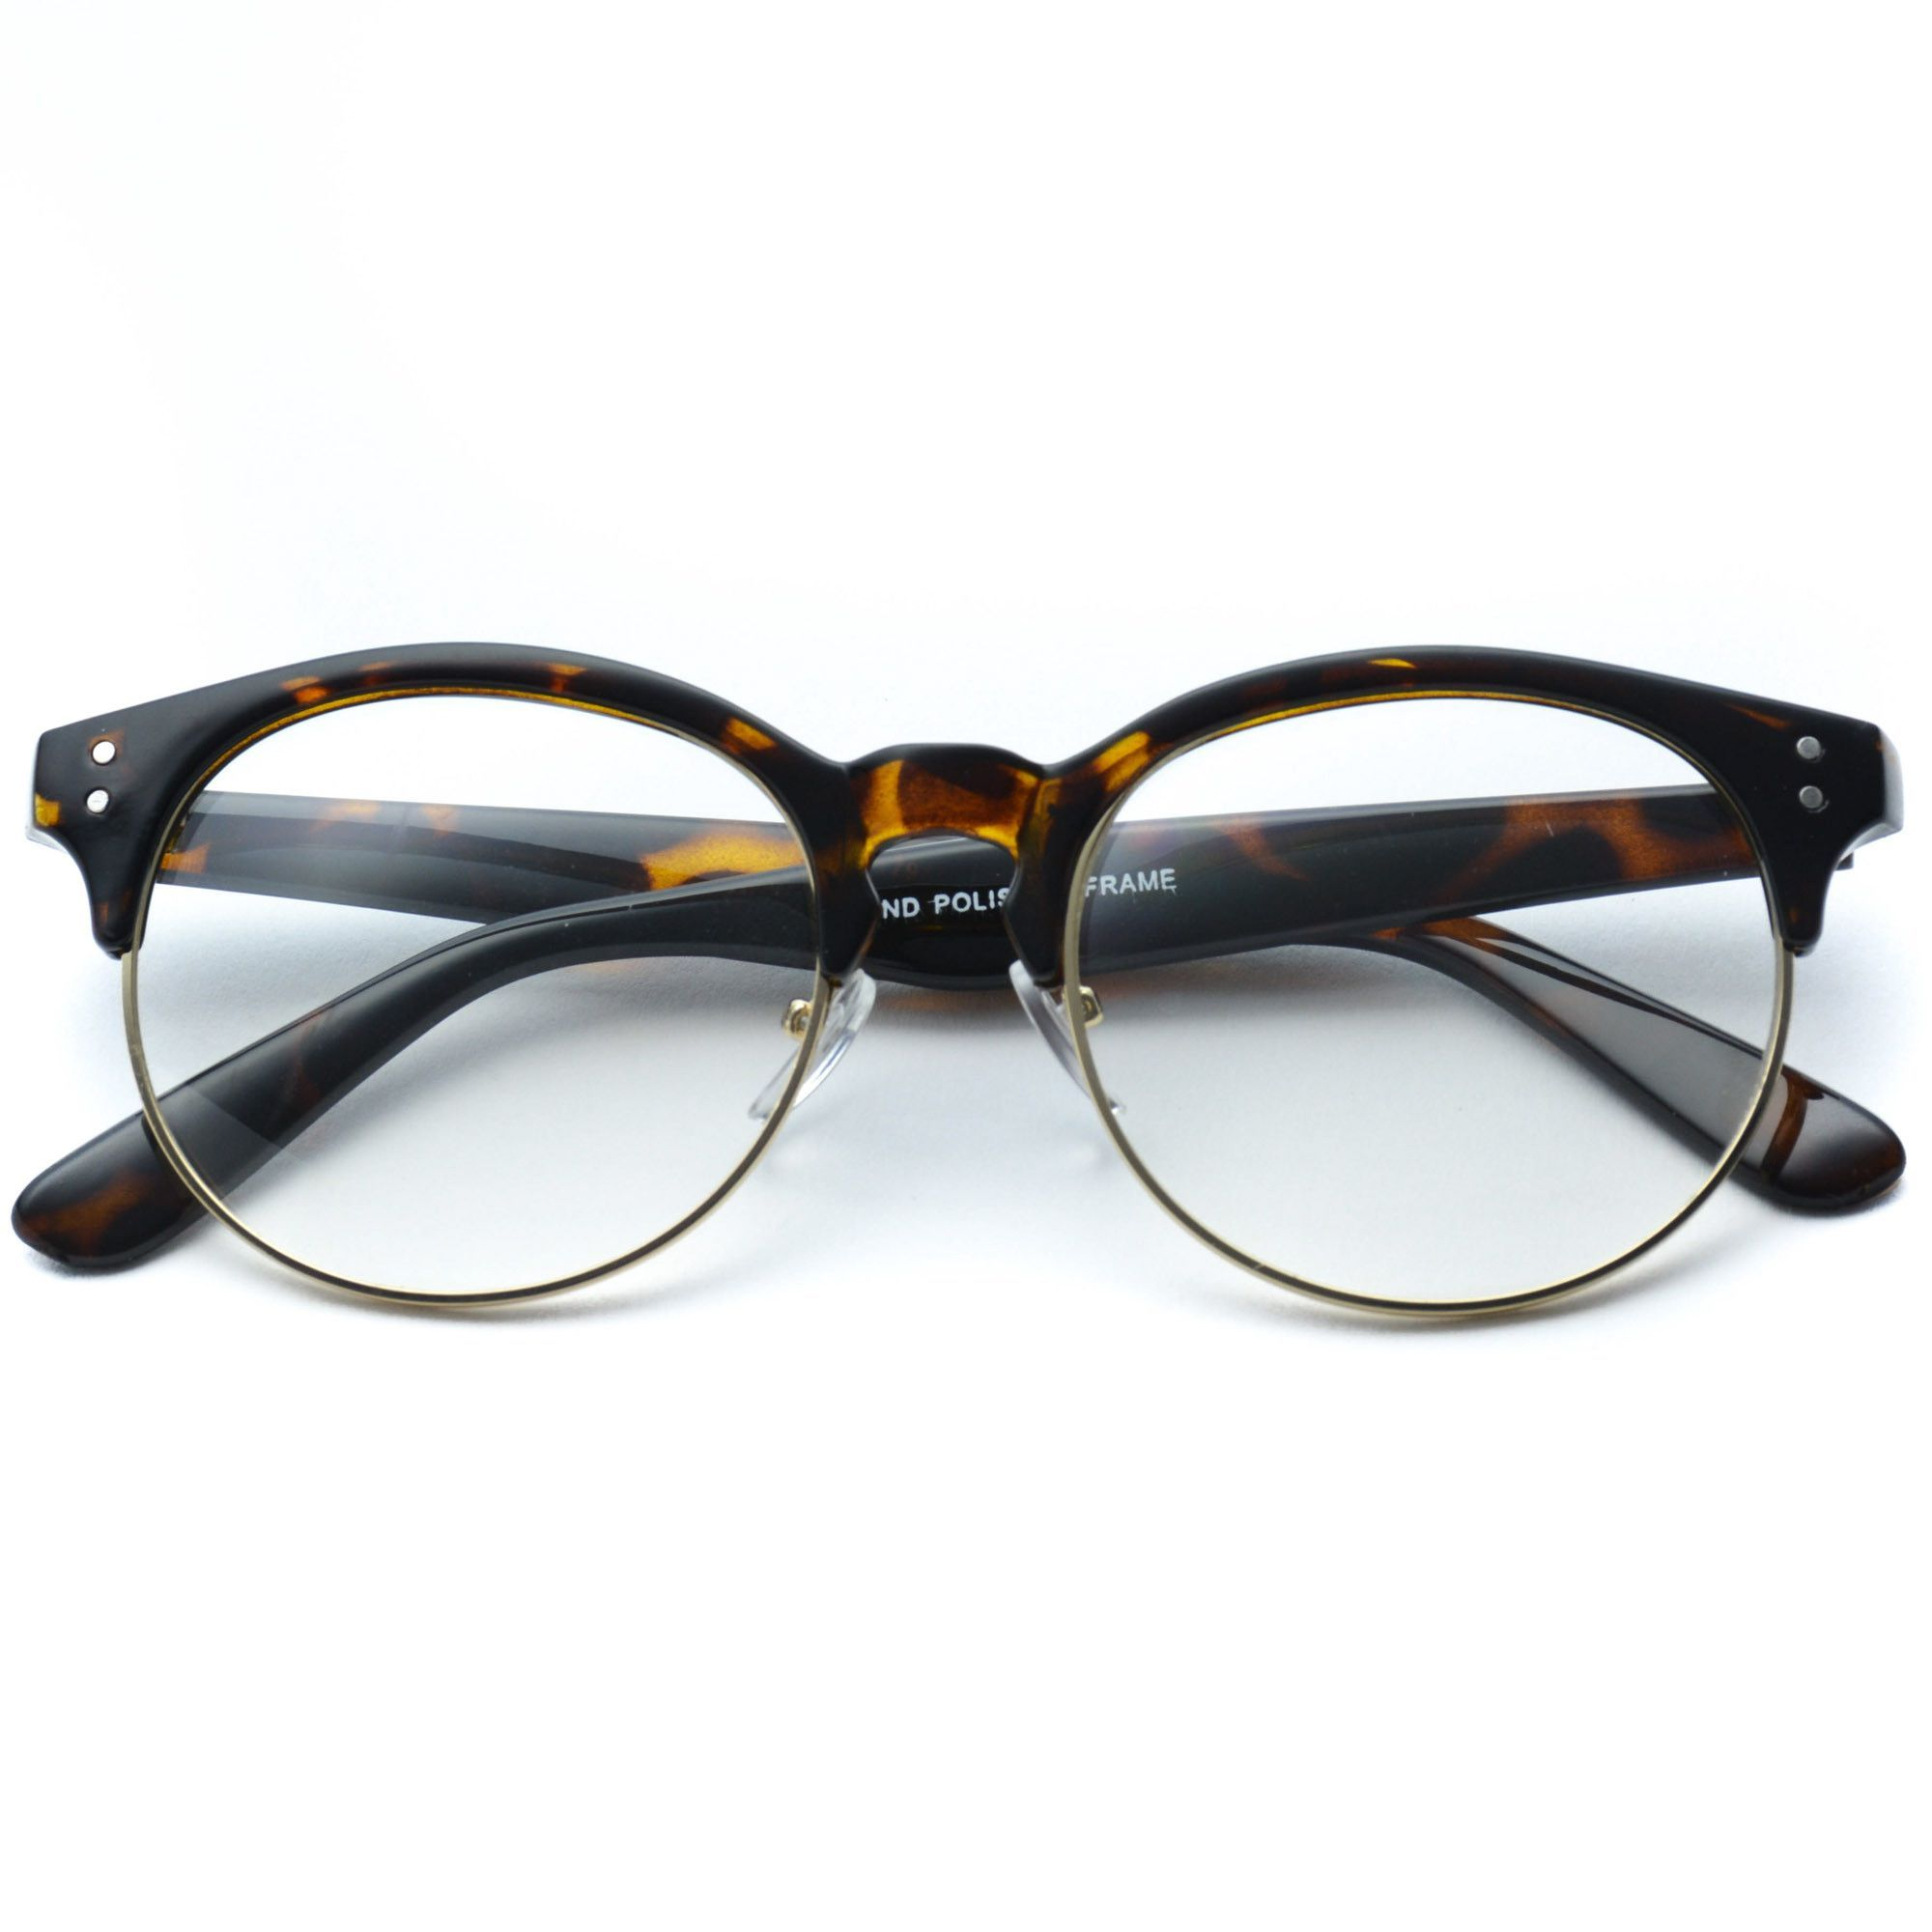 Fashion eyeglasses non prescription 30